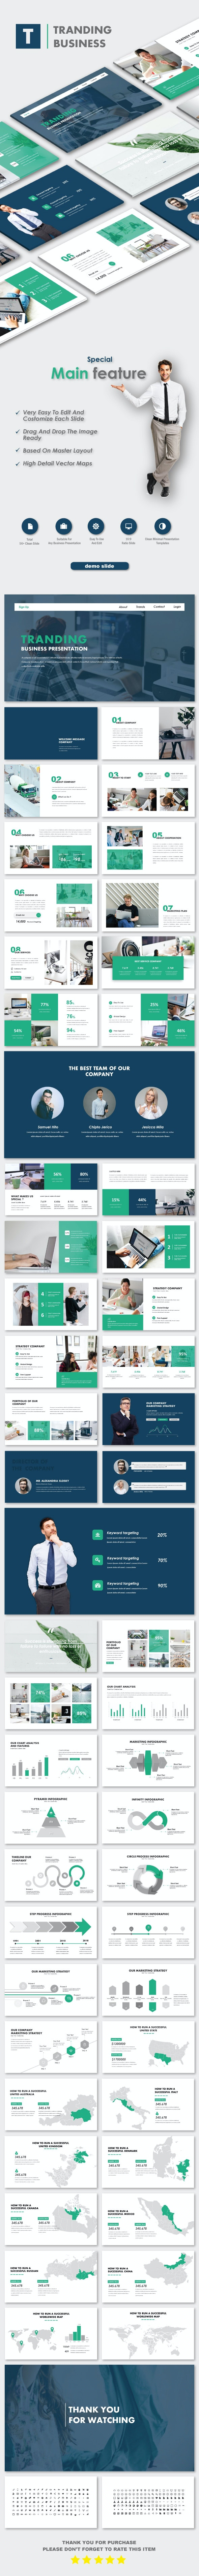 Tranding Business Google Slide Templates - PowerPoint Templates Presentation Templates